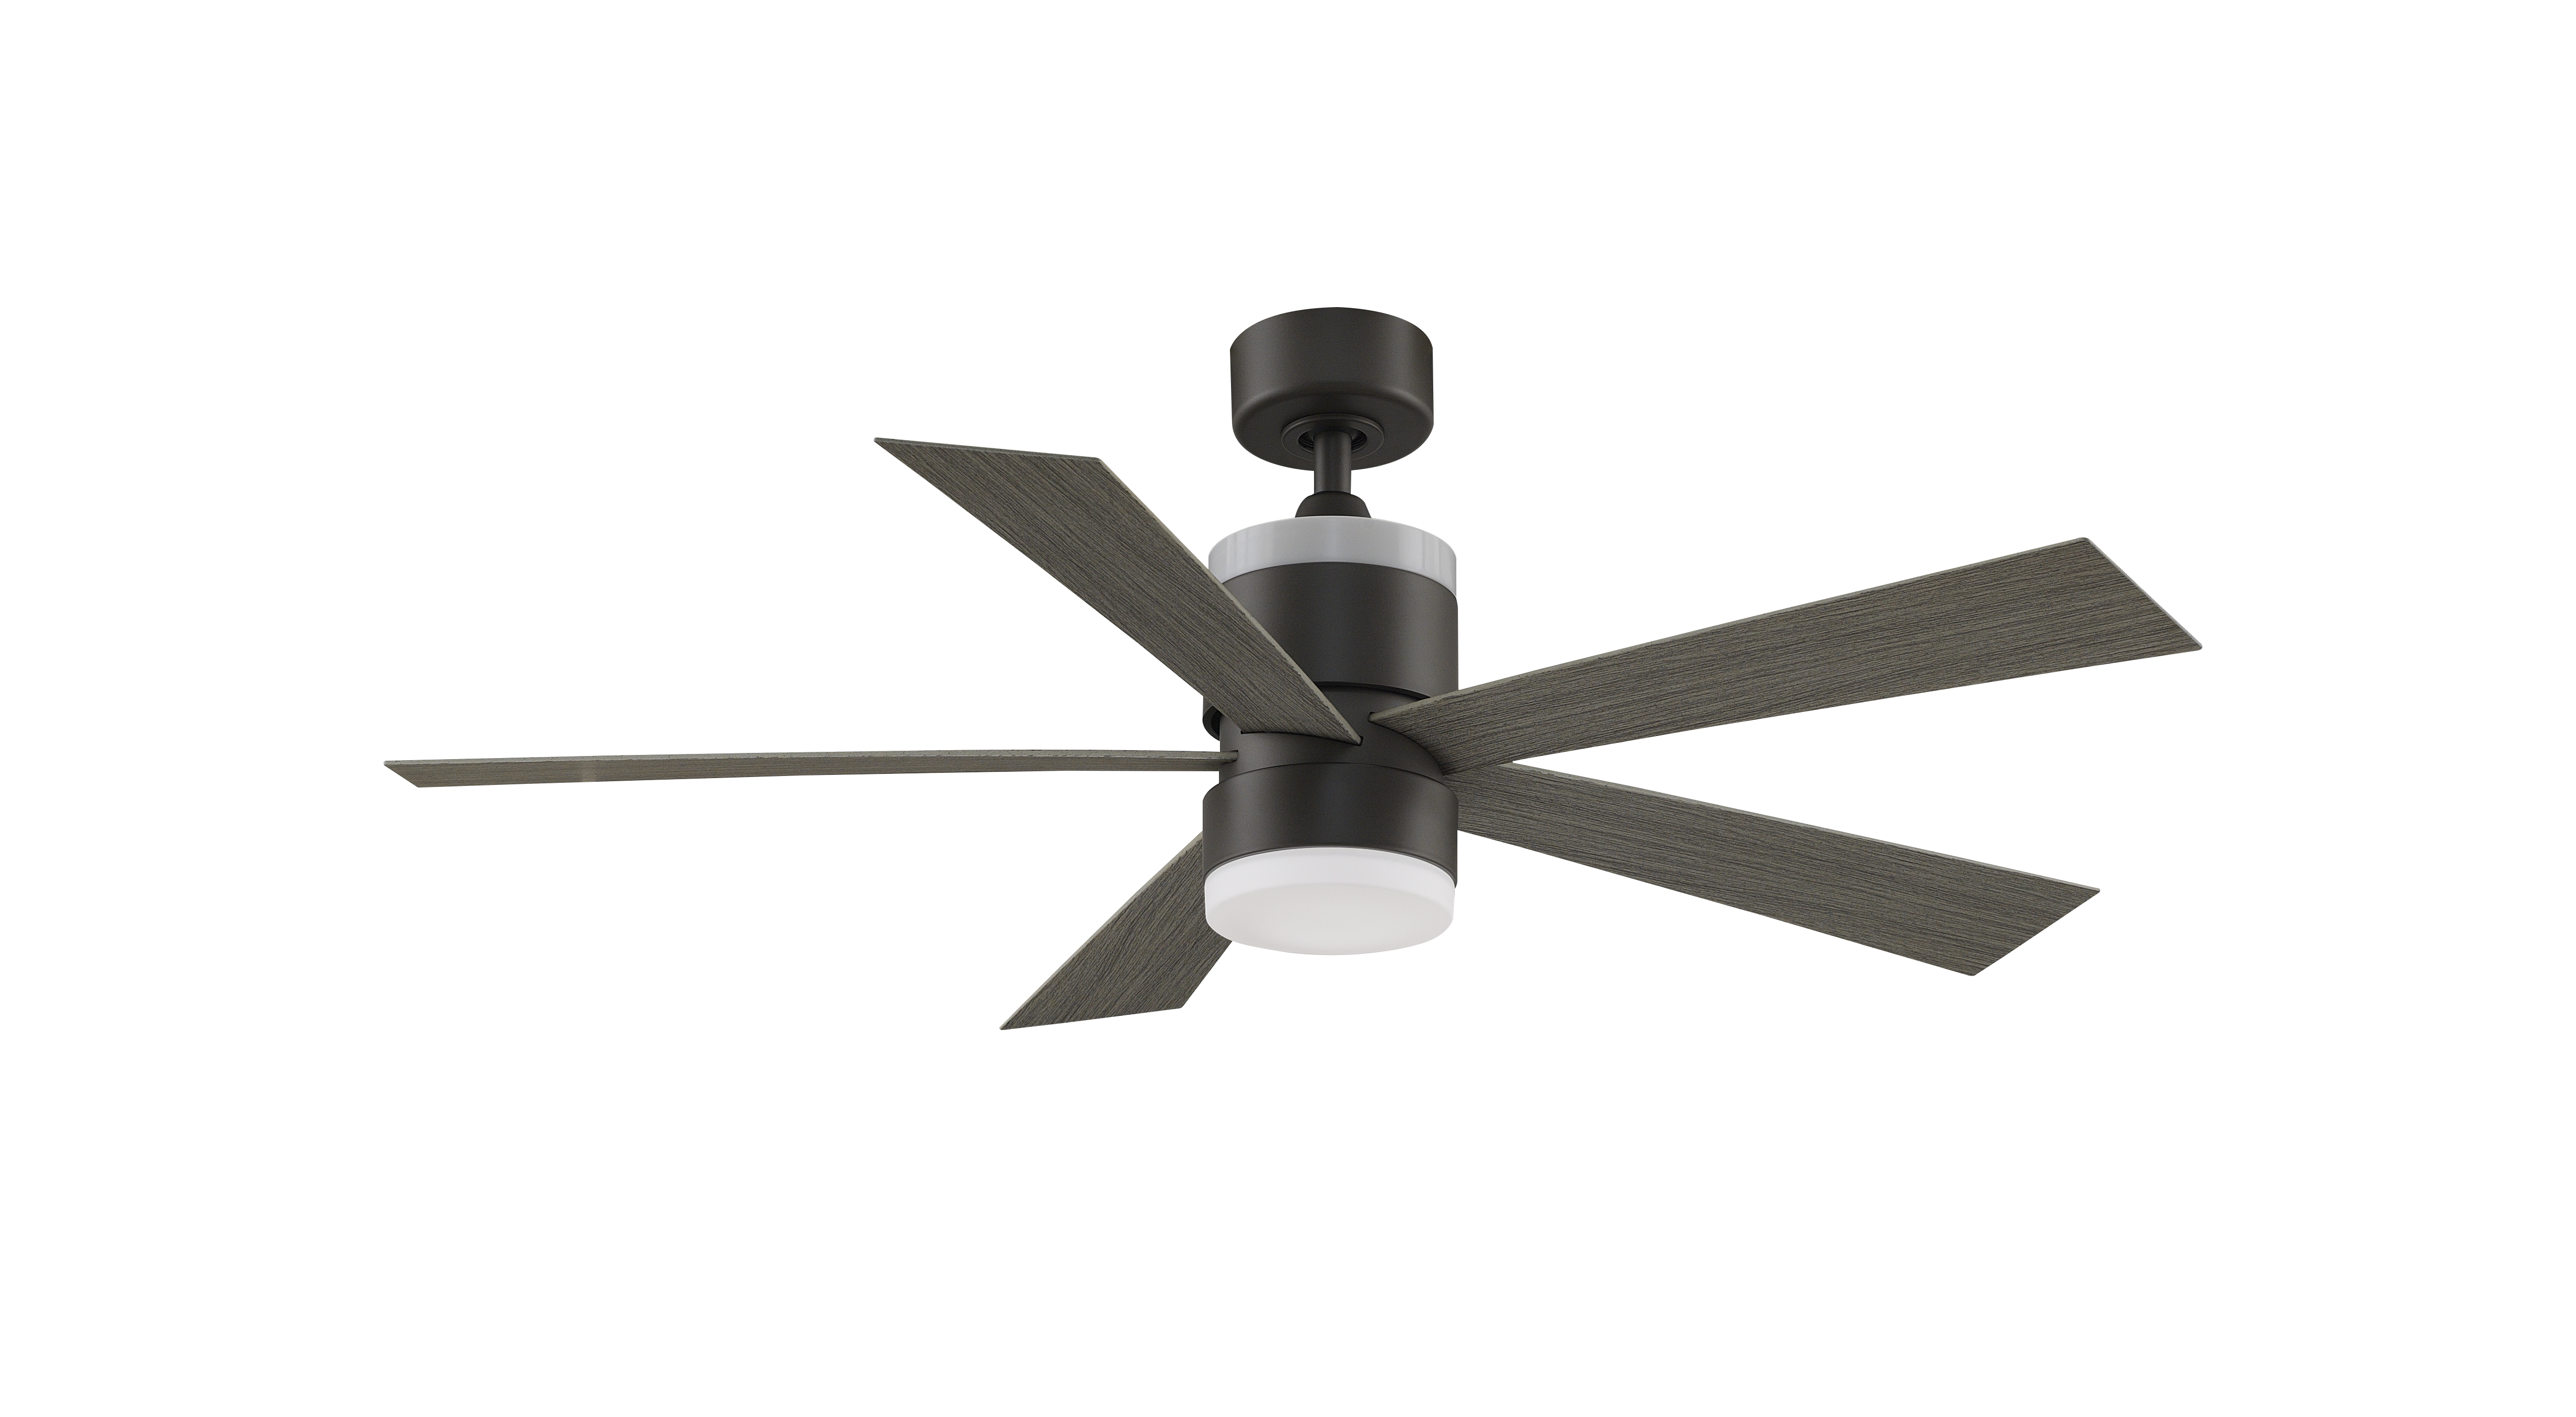 Fanimation Torch ceiling fan